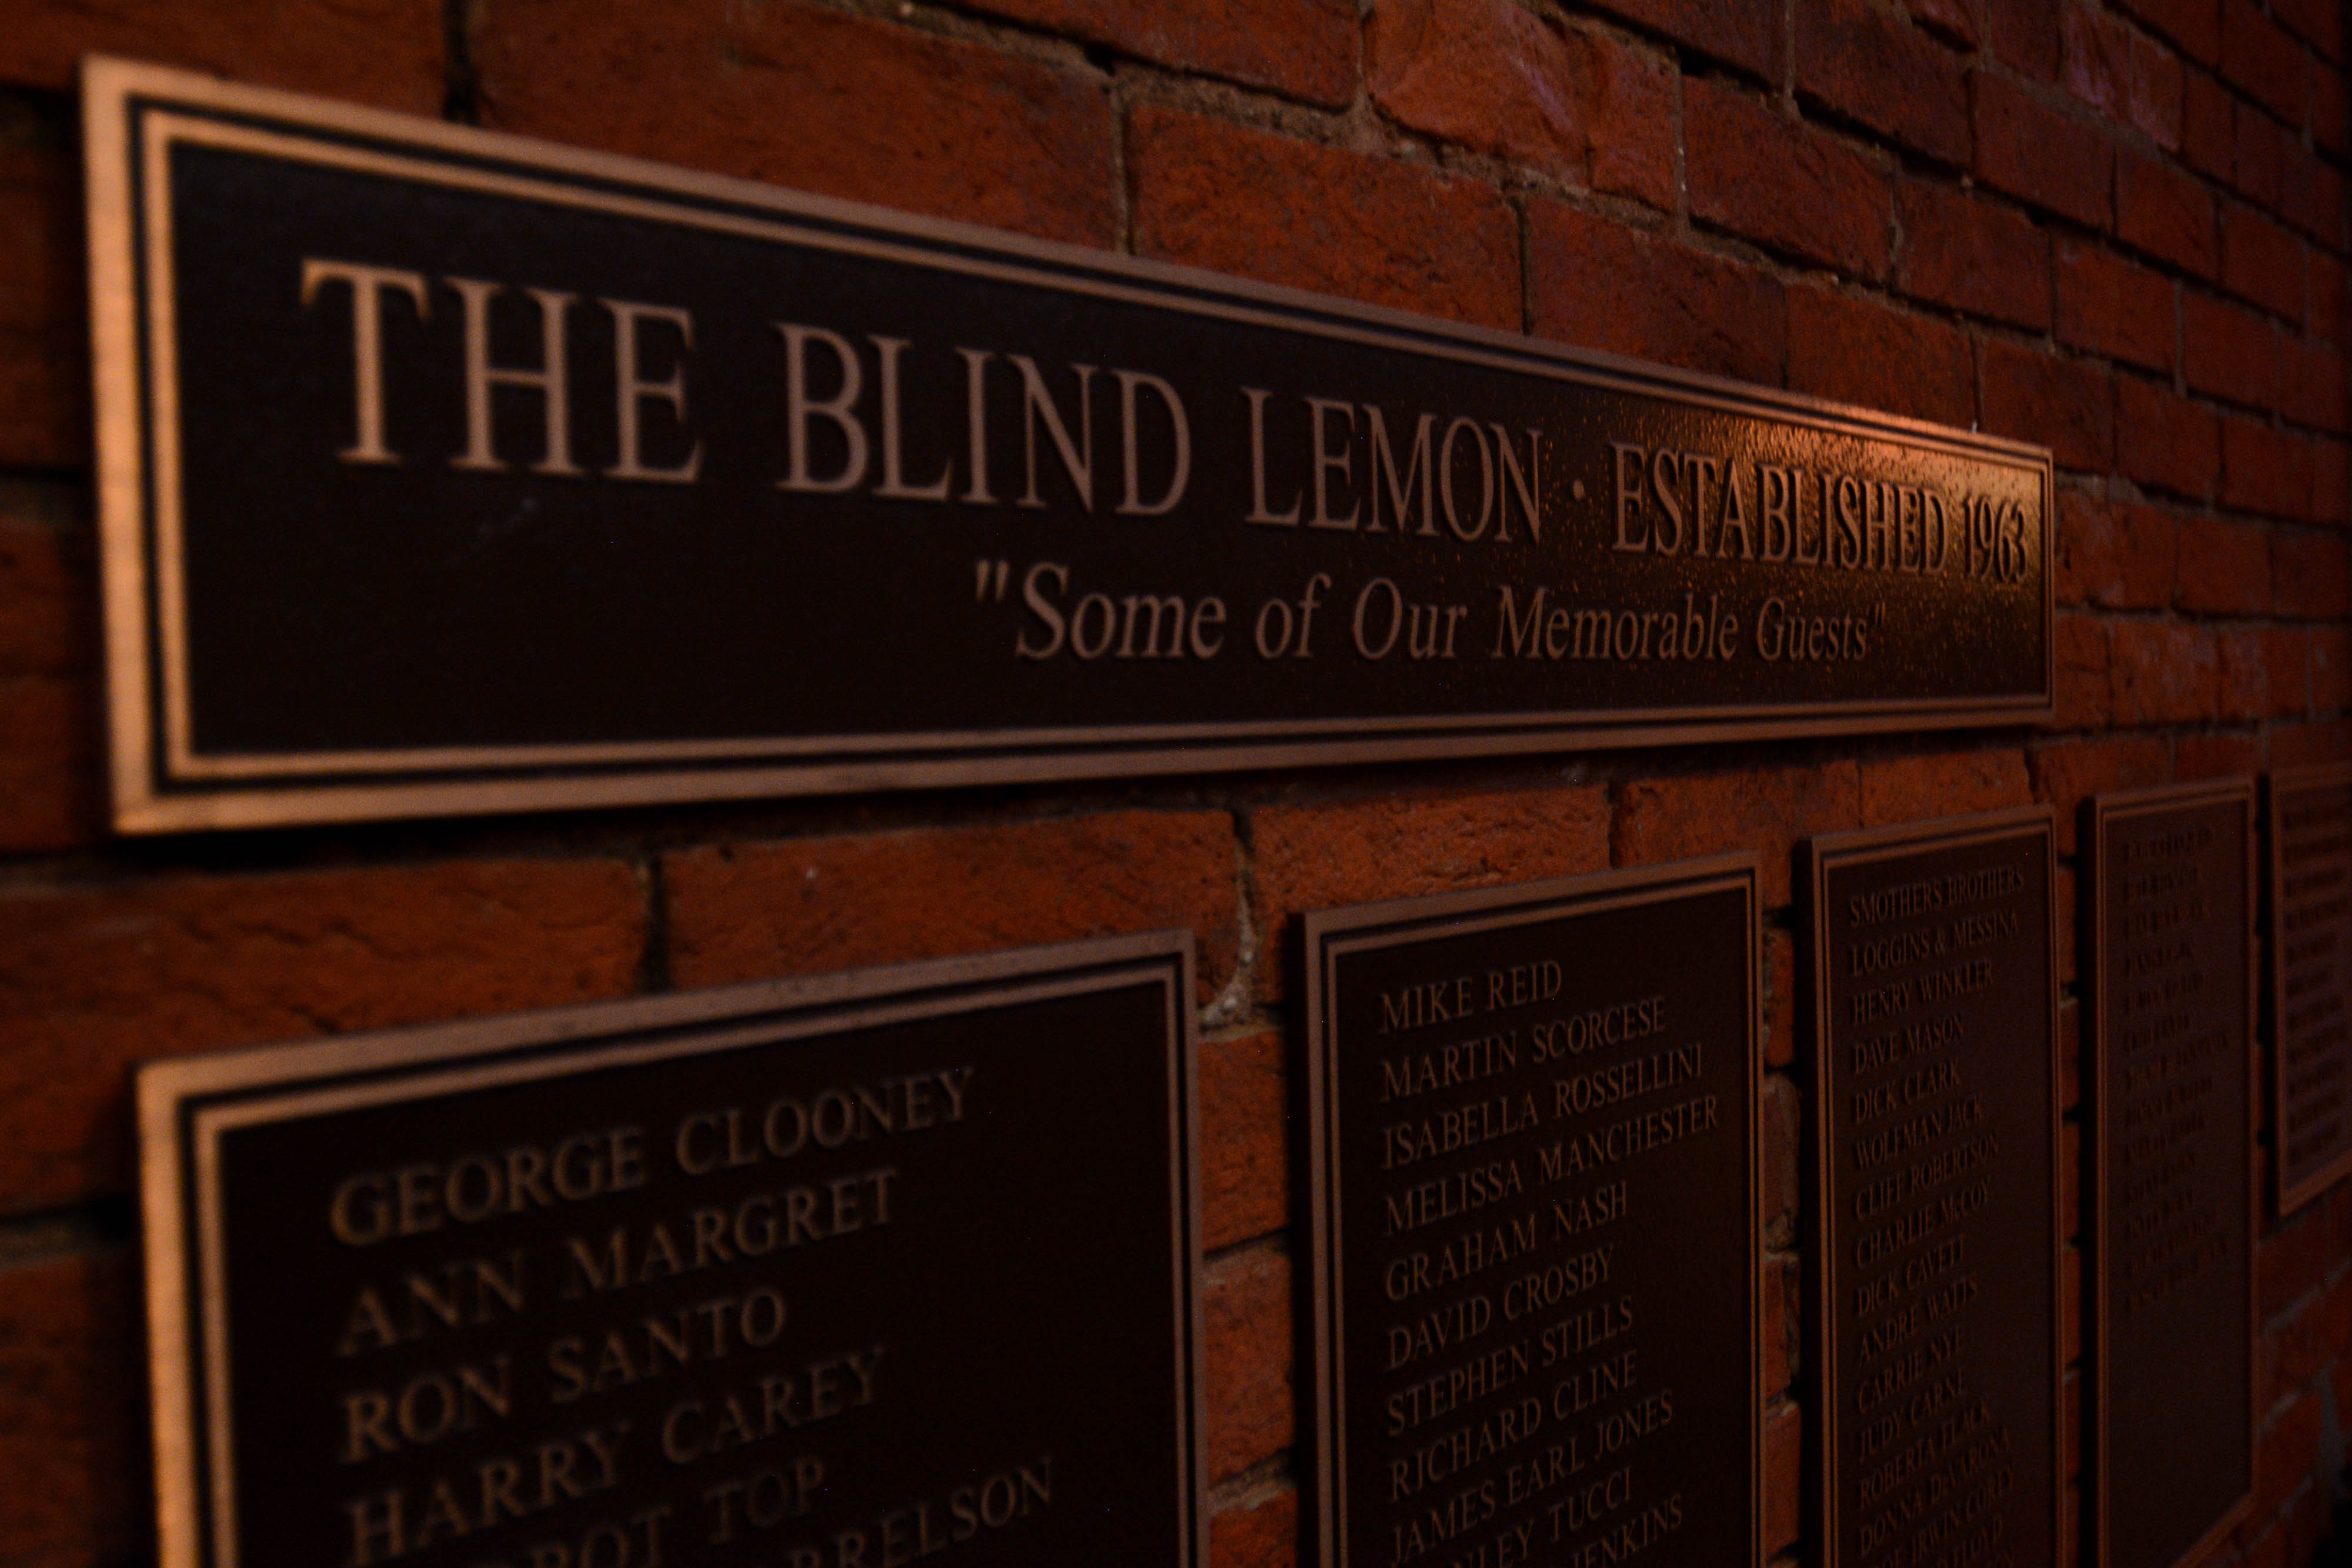 The Blind Lemon is located in Mt. Adams at 936 Hatch St. (45202). / Image: Daniel Sullivan Photography